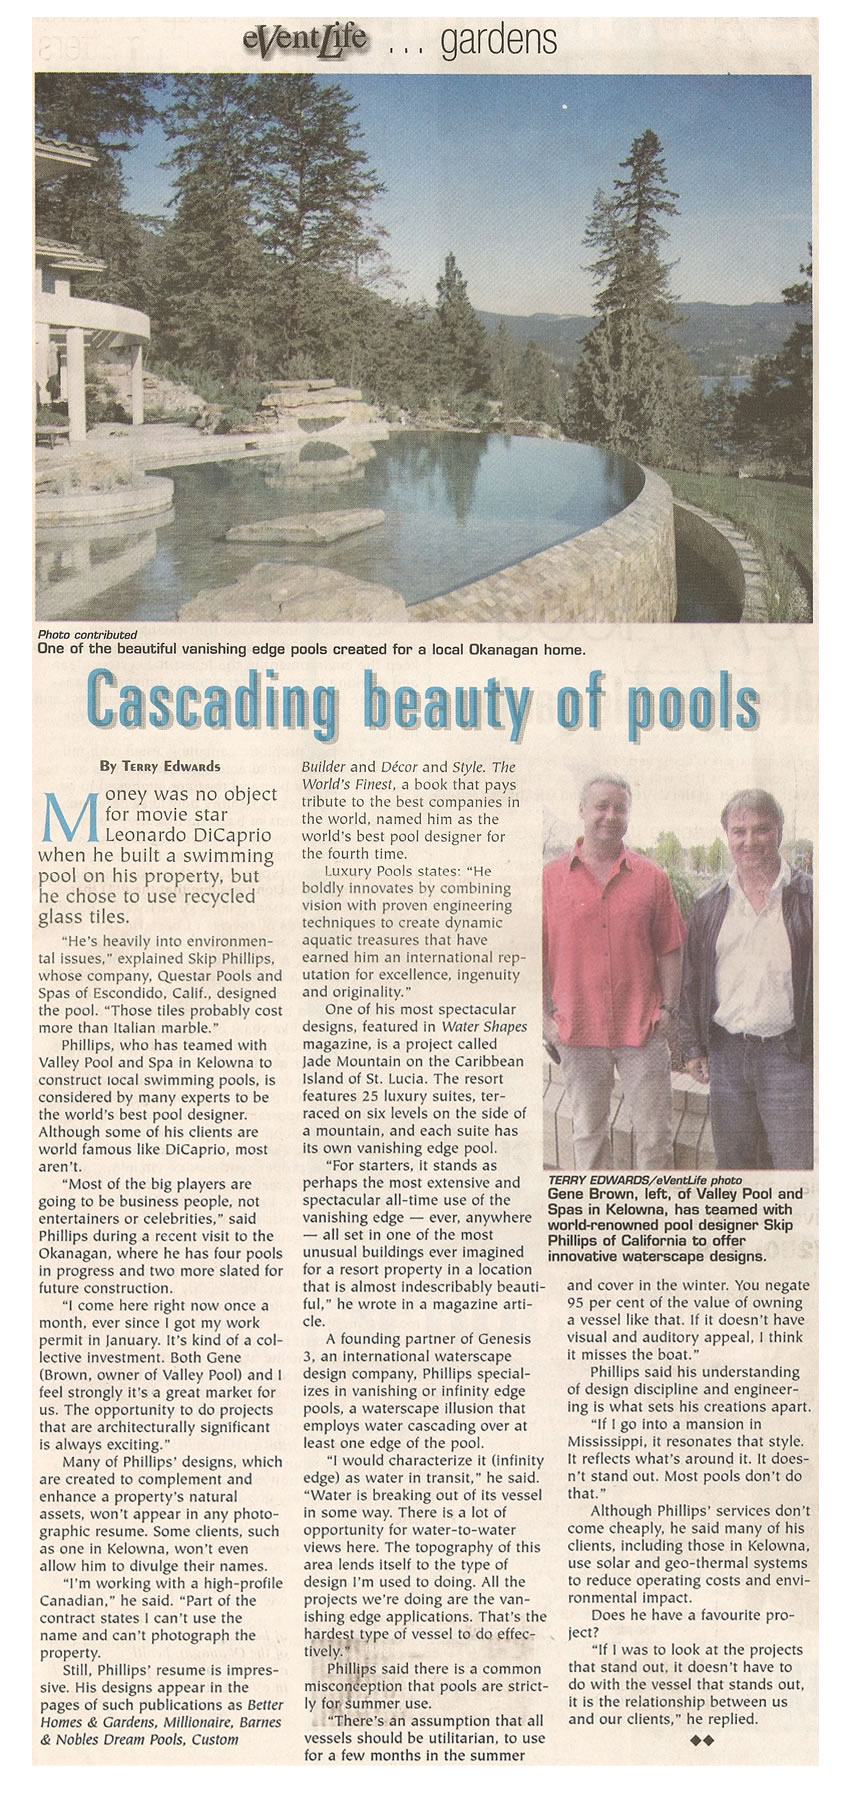 Event Life - Cascading Beauty Of Pools By Terry Edwards